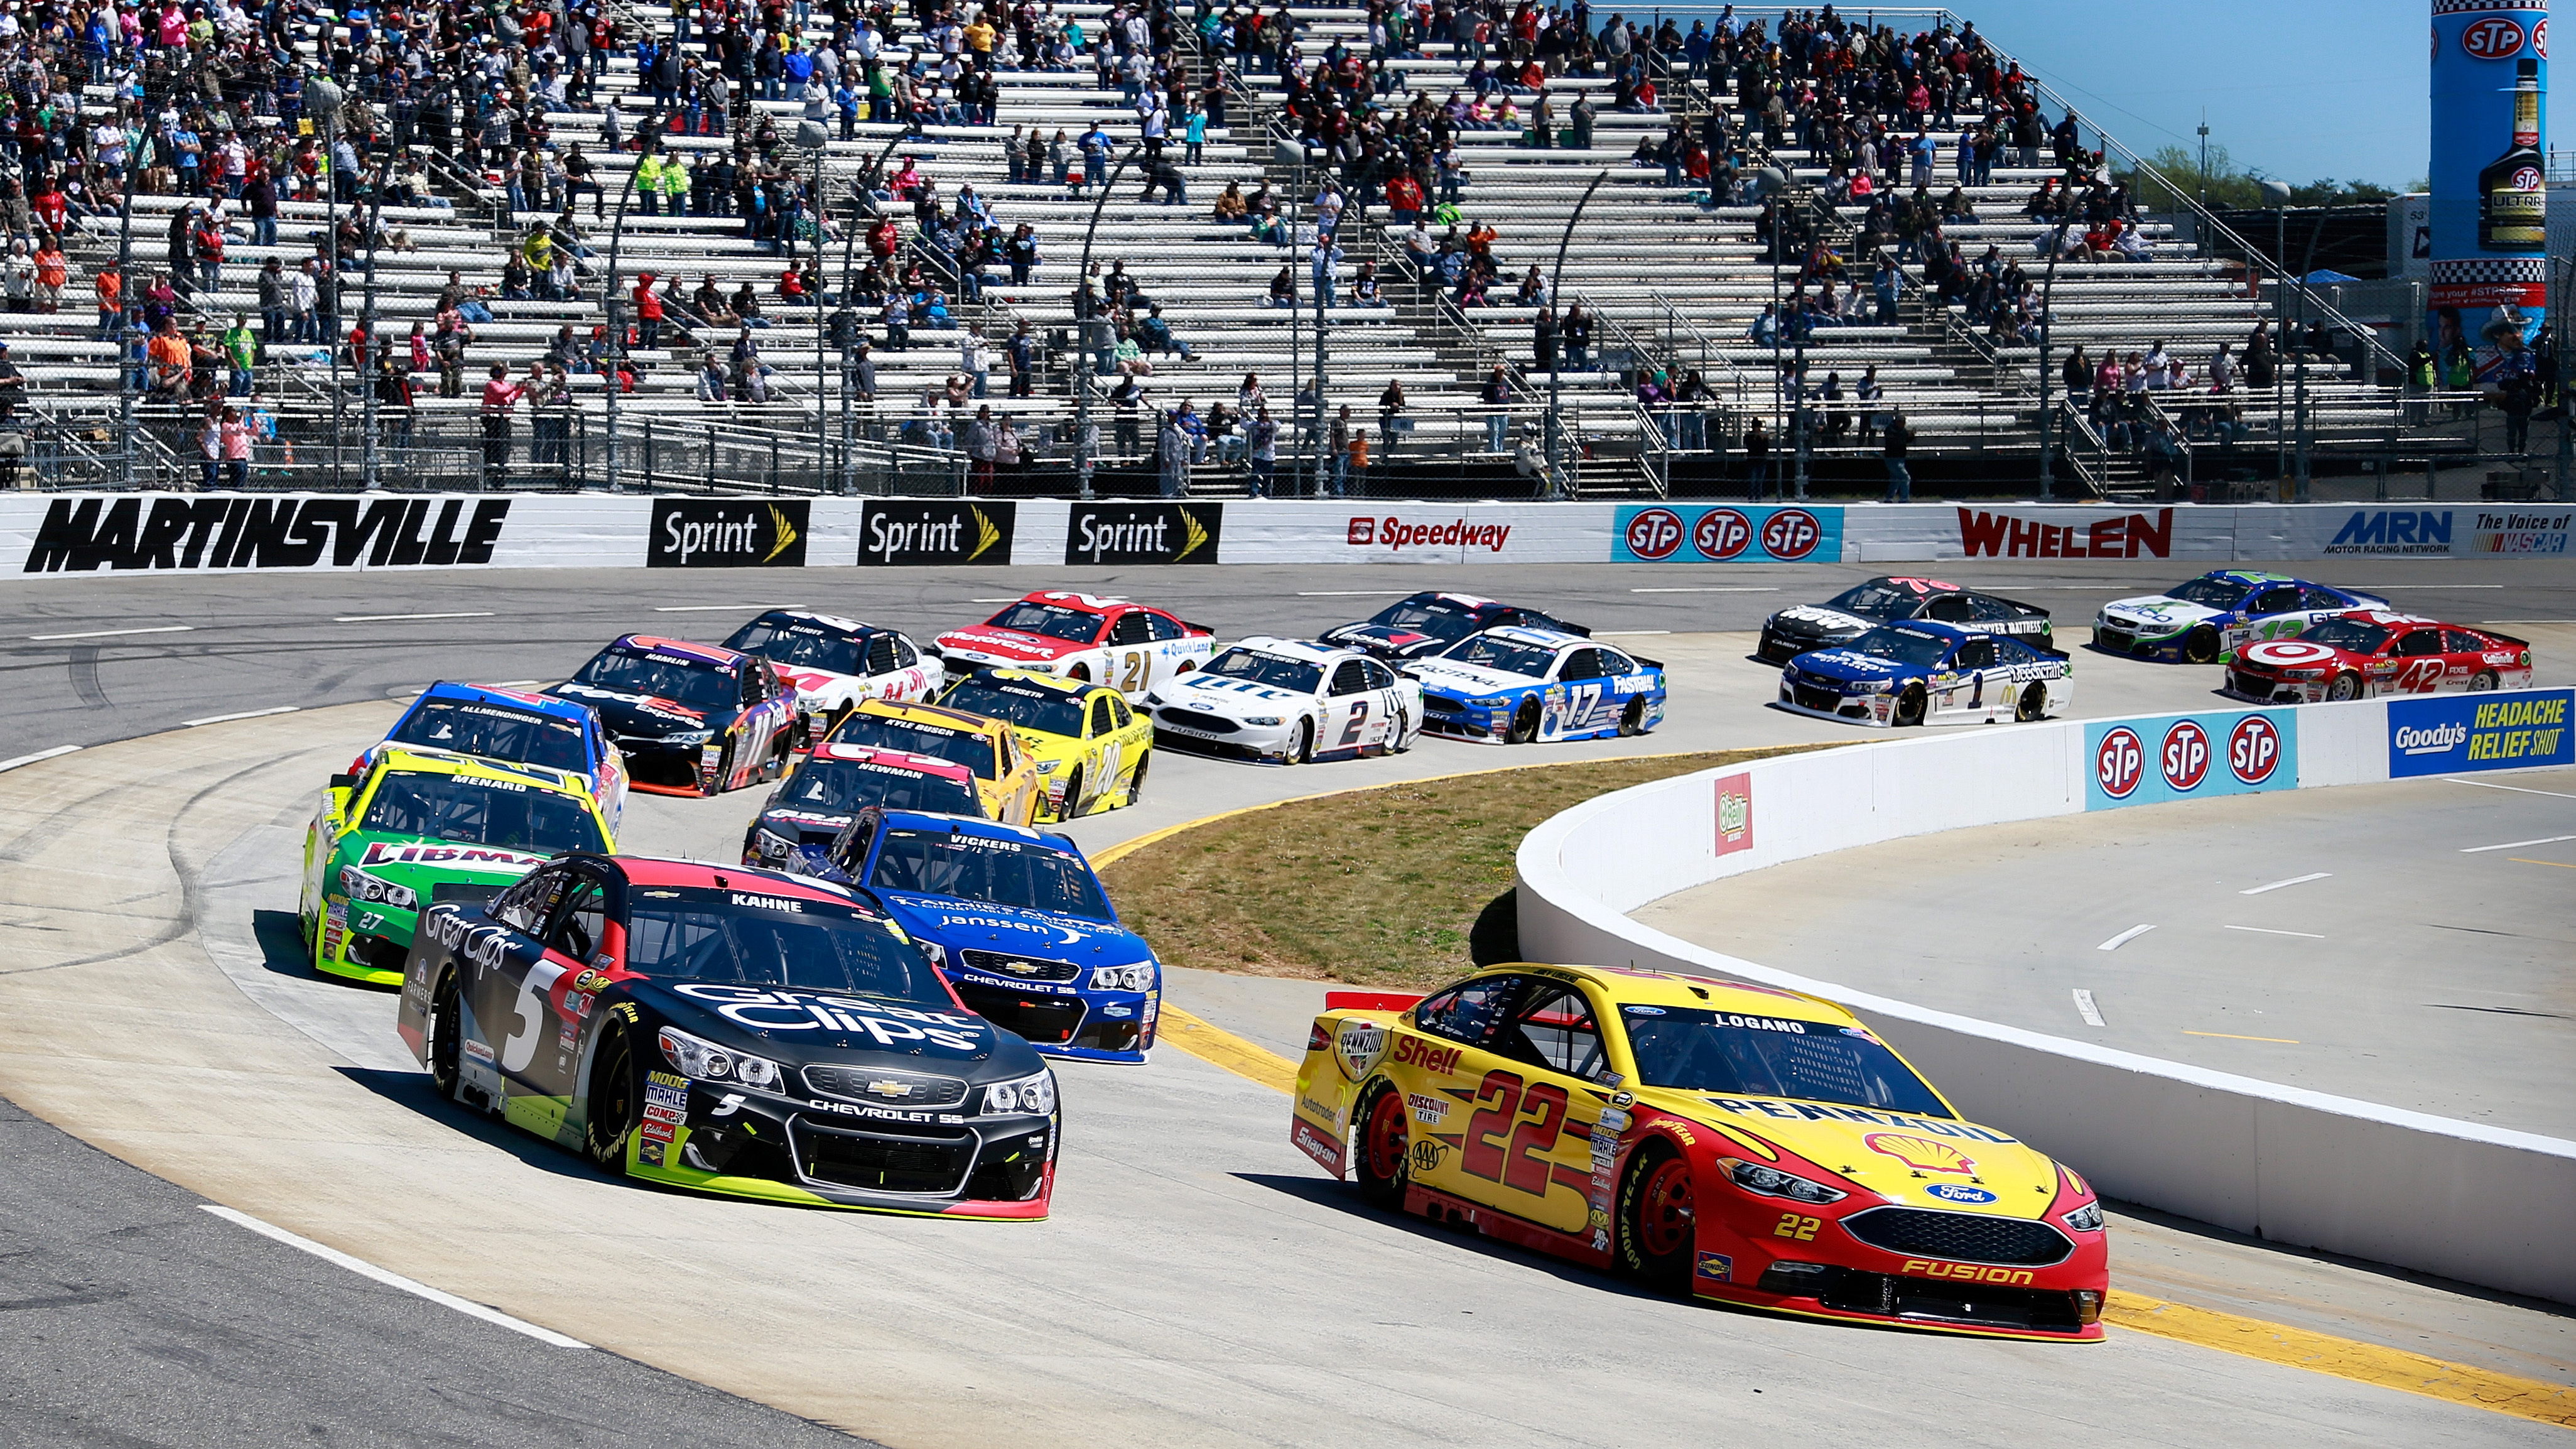 MARTINSVILLE, VA - APRIL 03:  Kasey Kahne, driver of the #5 Great Clips Chevrolet, and Joey Logano, driver of the #22 Shell Pennzoil Ford, lead the field to start the NASCAR Sprint Cup Series STP 500 at Martinsville Speedway on April 3, 2016 in Martinsville, Virginia.  (Photo by Matt Sullivan/NASCAR via Getty Images)